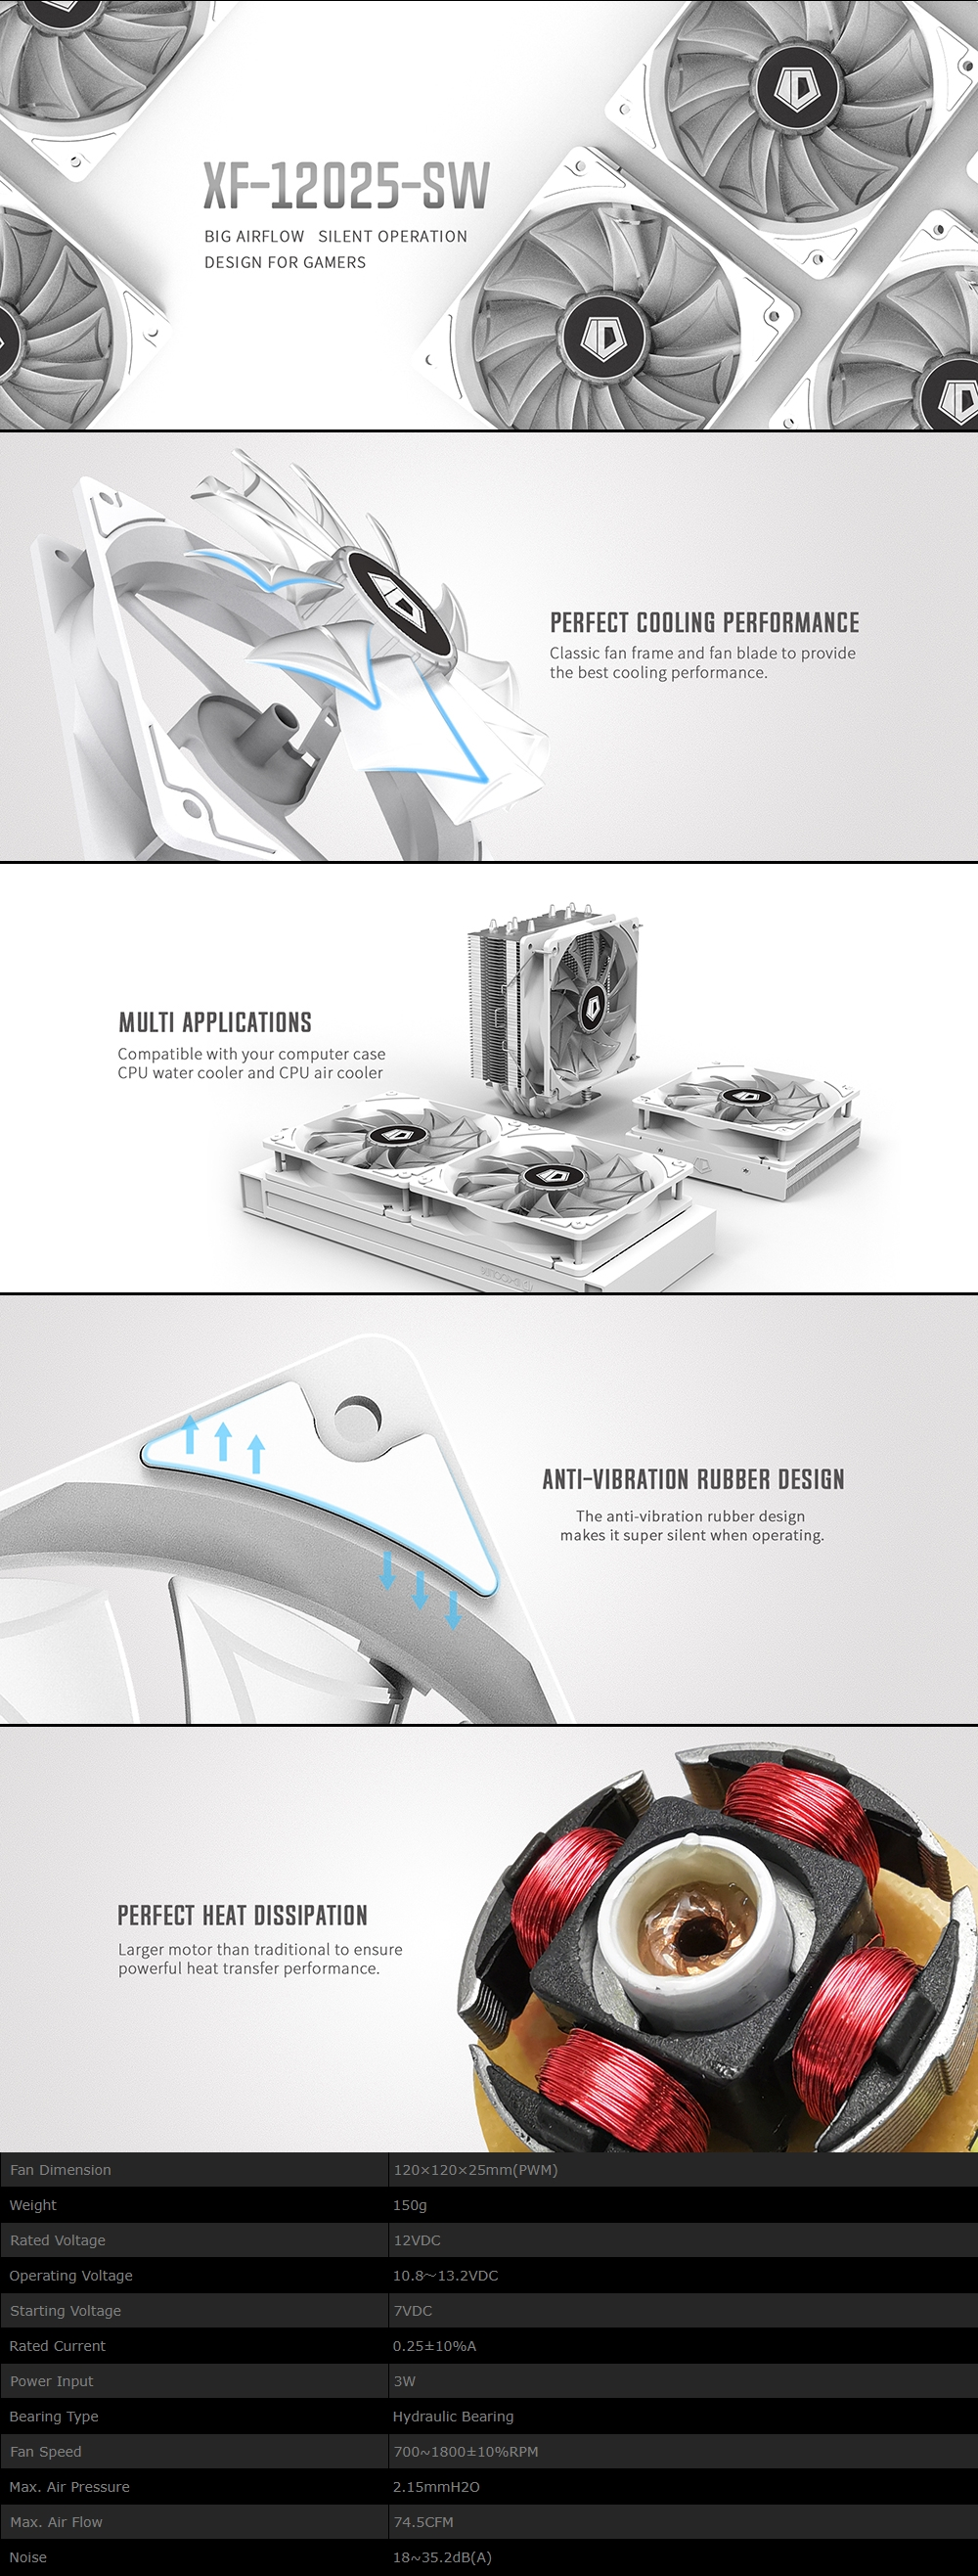 A large marketing image providing additional information about the product ID-COOLING XF Series 120mm White LED Fan - Additional alt info not provided